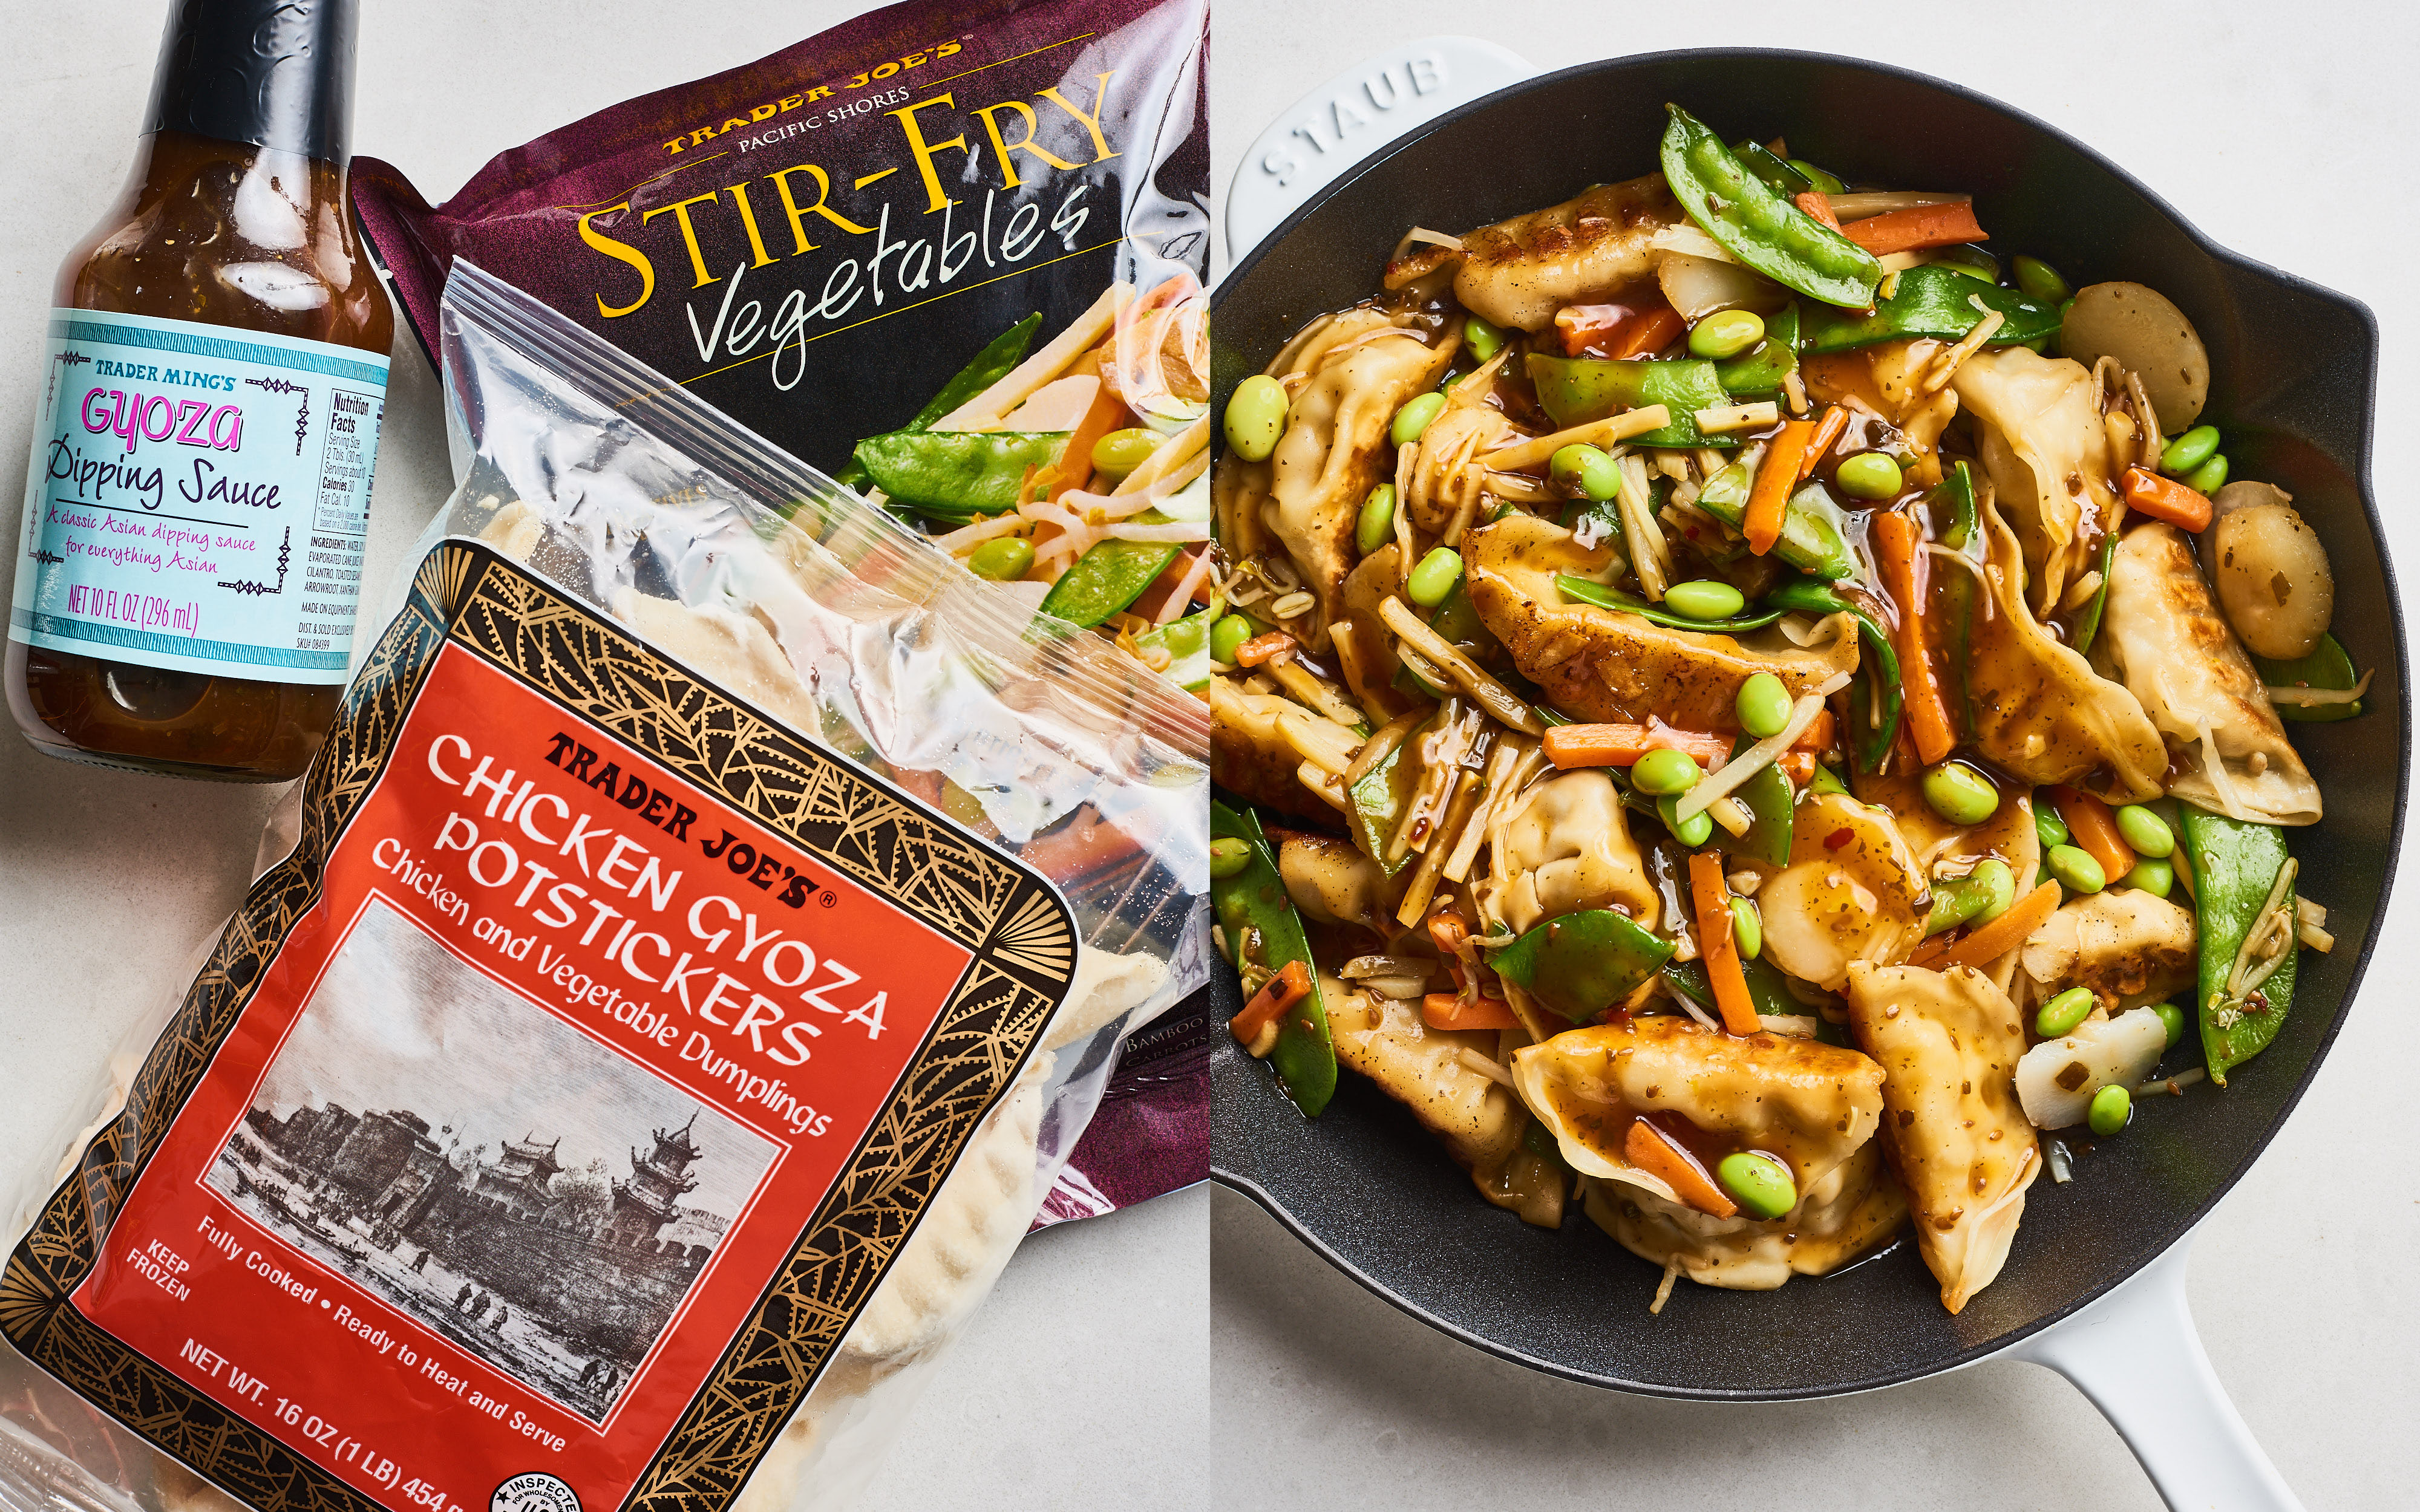 Trader Joe's Potsticker Stir-Fry